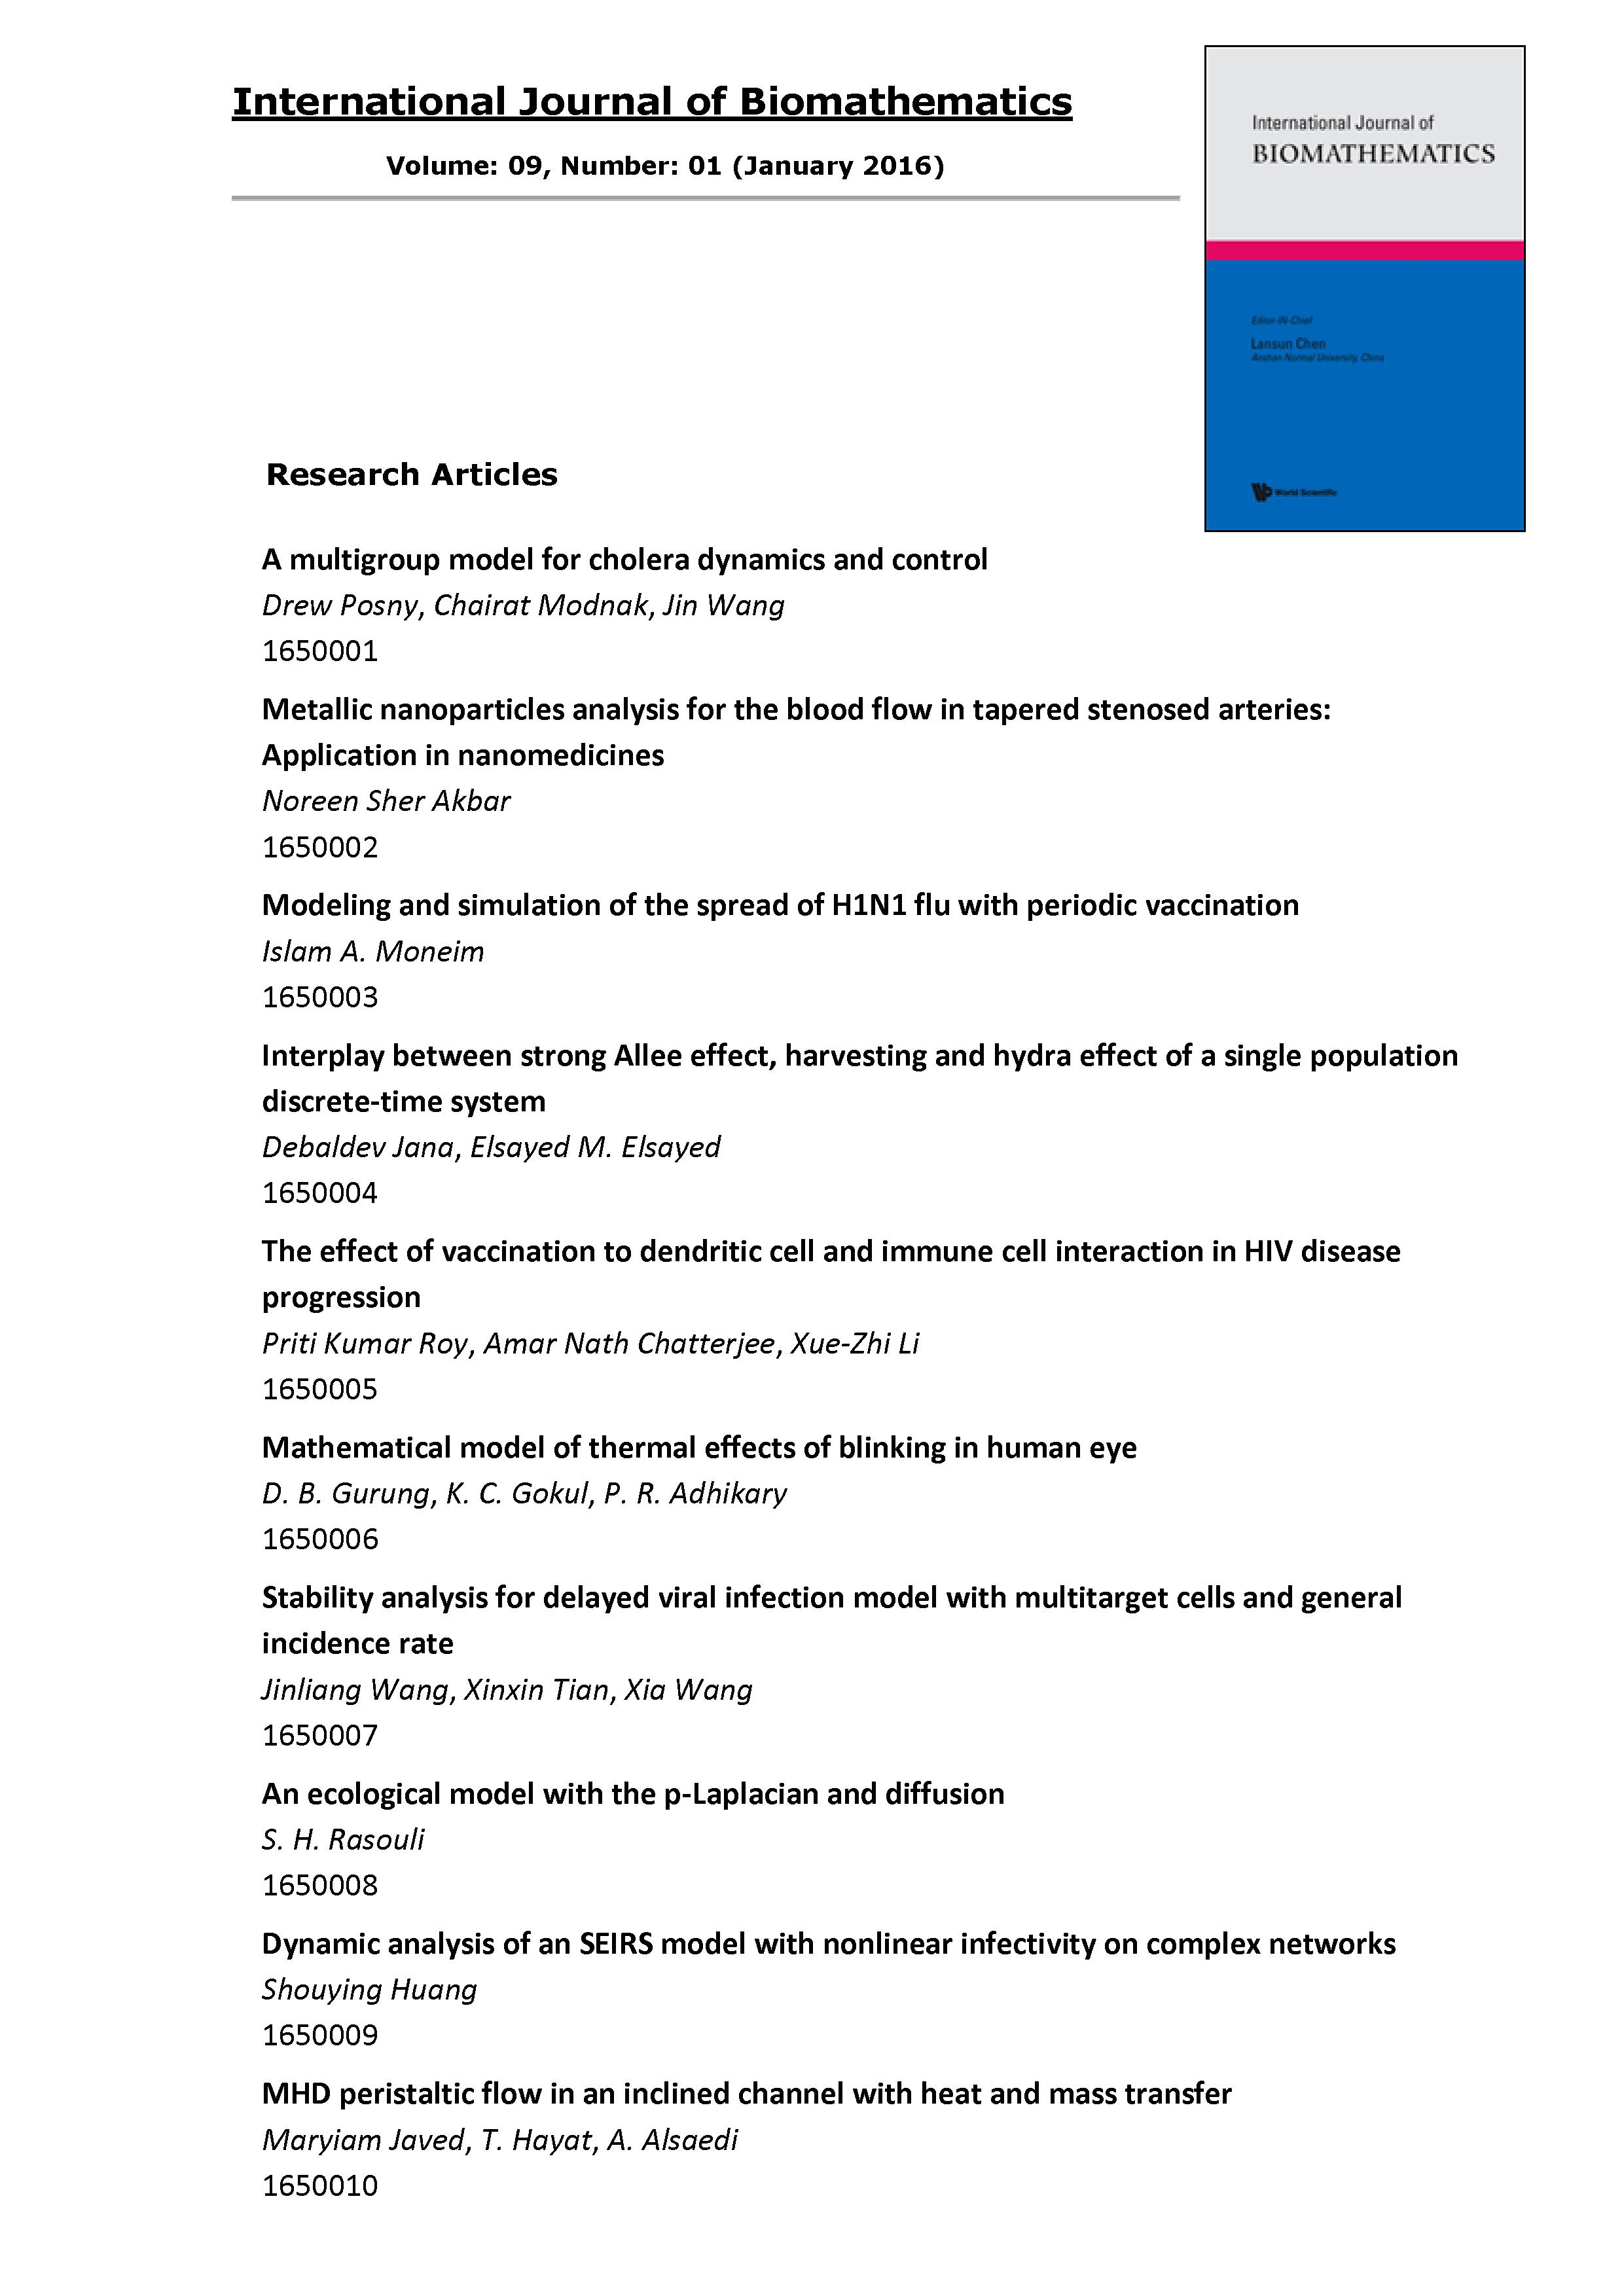 biomathematics research papers Some of these career fields include teaching (although not so high paying, this career has an extremely large growth rate and great job satisfaction), finance, actuarial science, cryptography, computer science, biomathematics, operations research, mathematical biology, state or government work, or researcher.